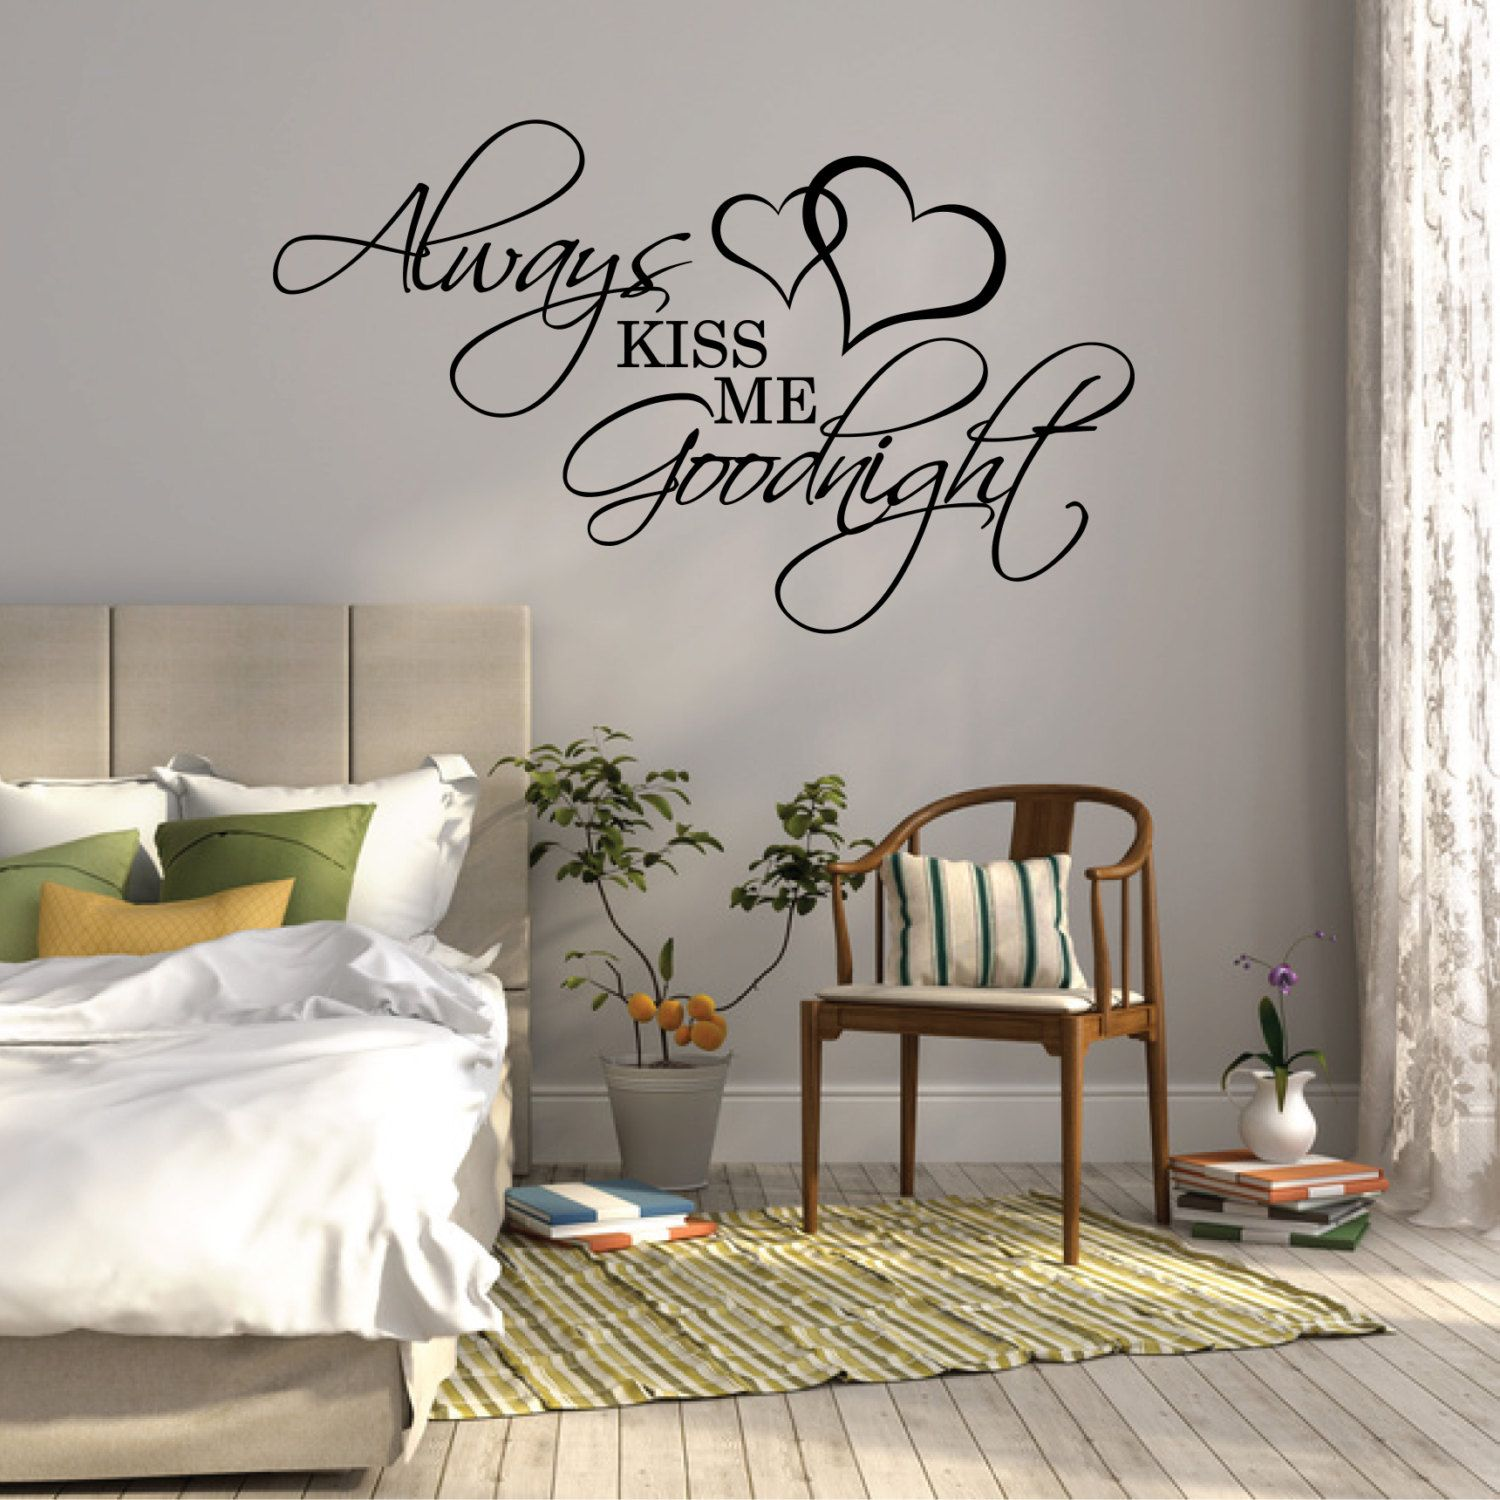 Wall sticker quote always kiss me goodnight over bed Wall stickers for bedrooms